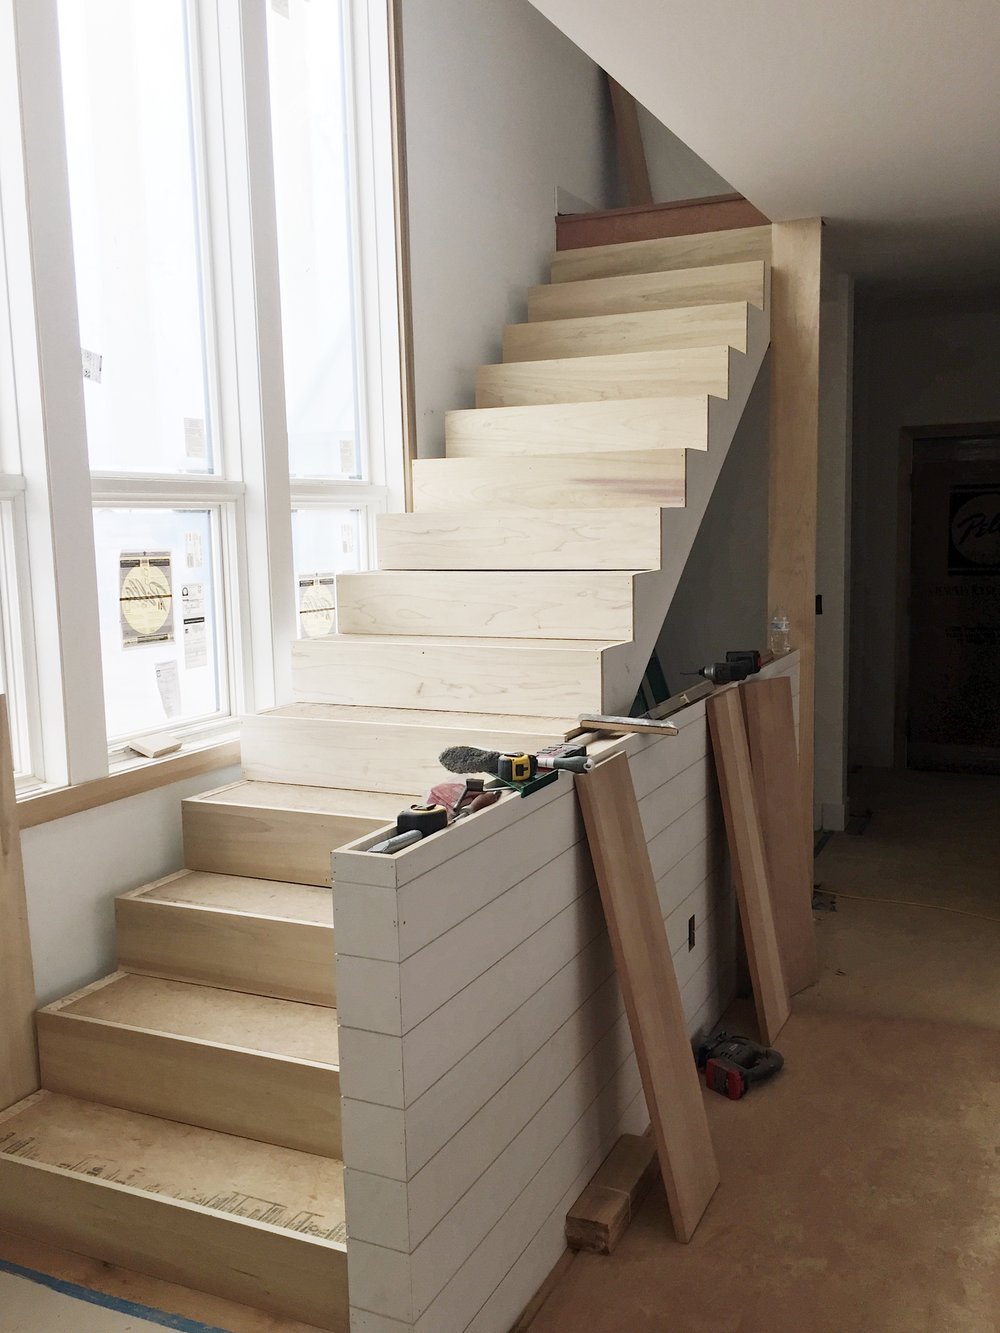 Tyler Stopped By Again On Wednesday To Find The Stair Treads (the Part You  Walk On) Installed And Looking AWESOME. The Treads Overhand The Stairs By A  Few ...